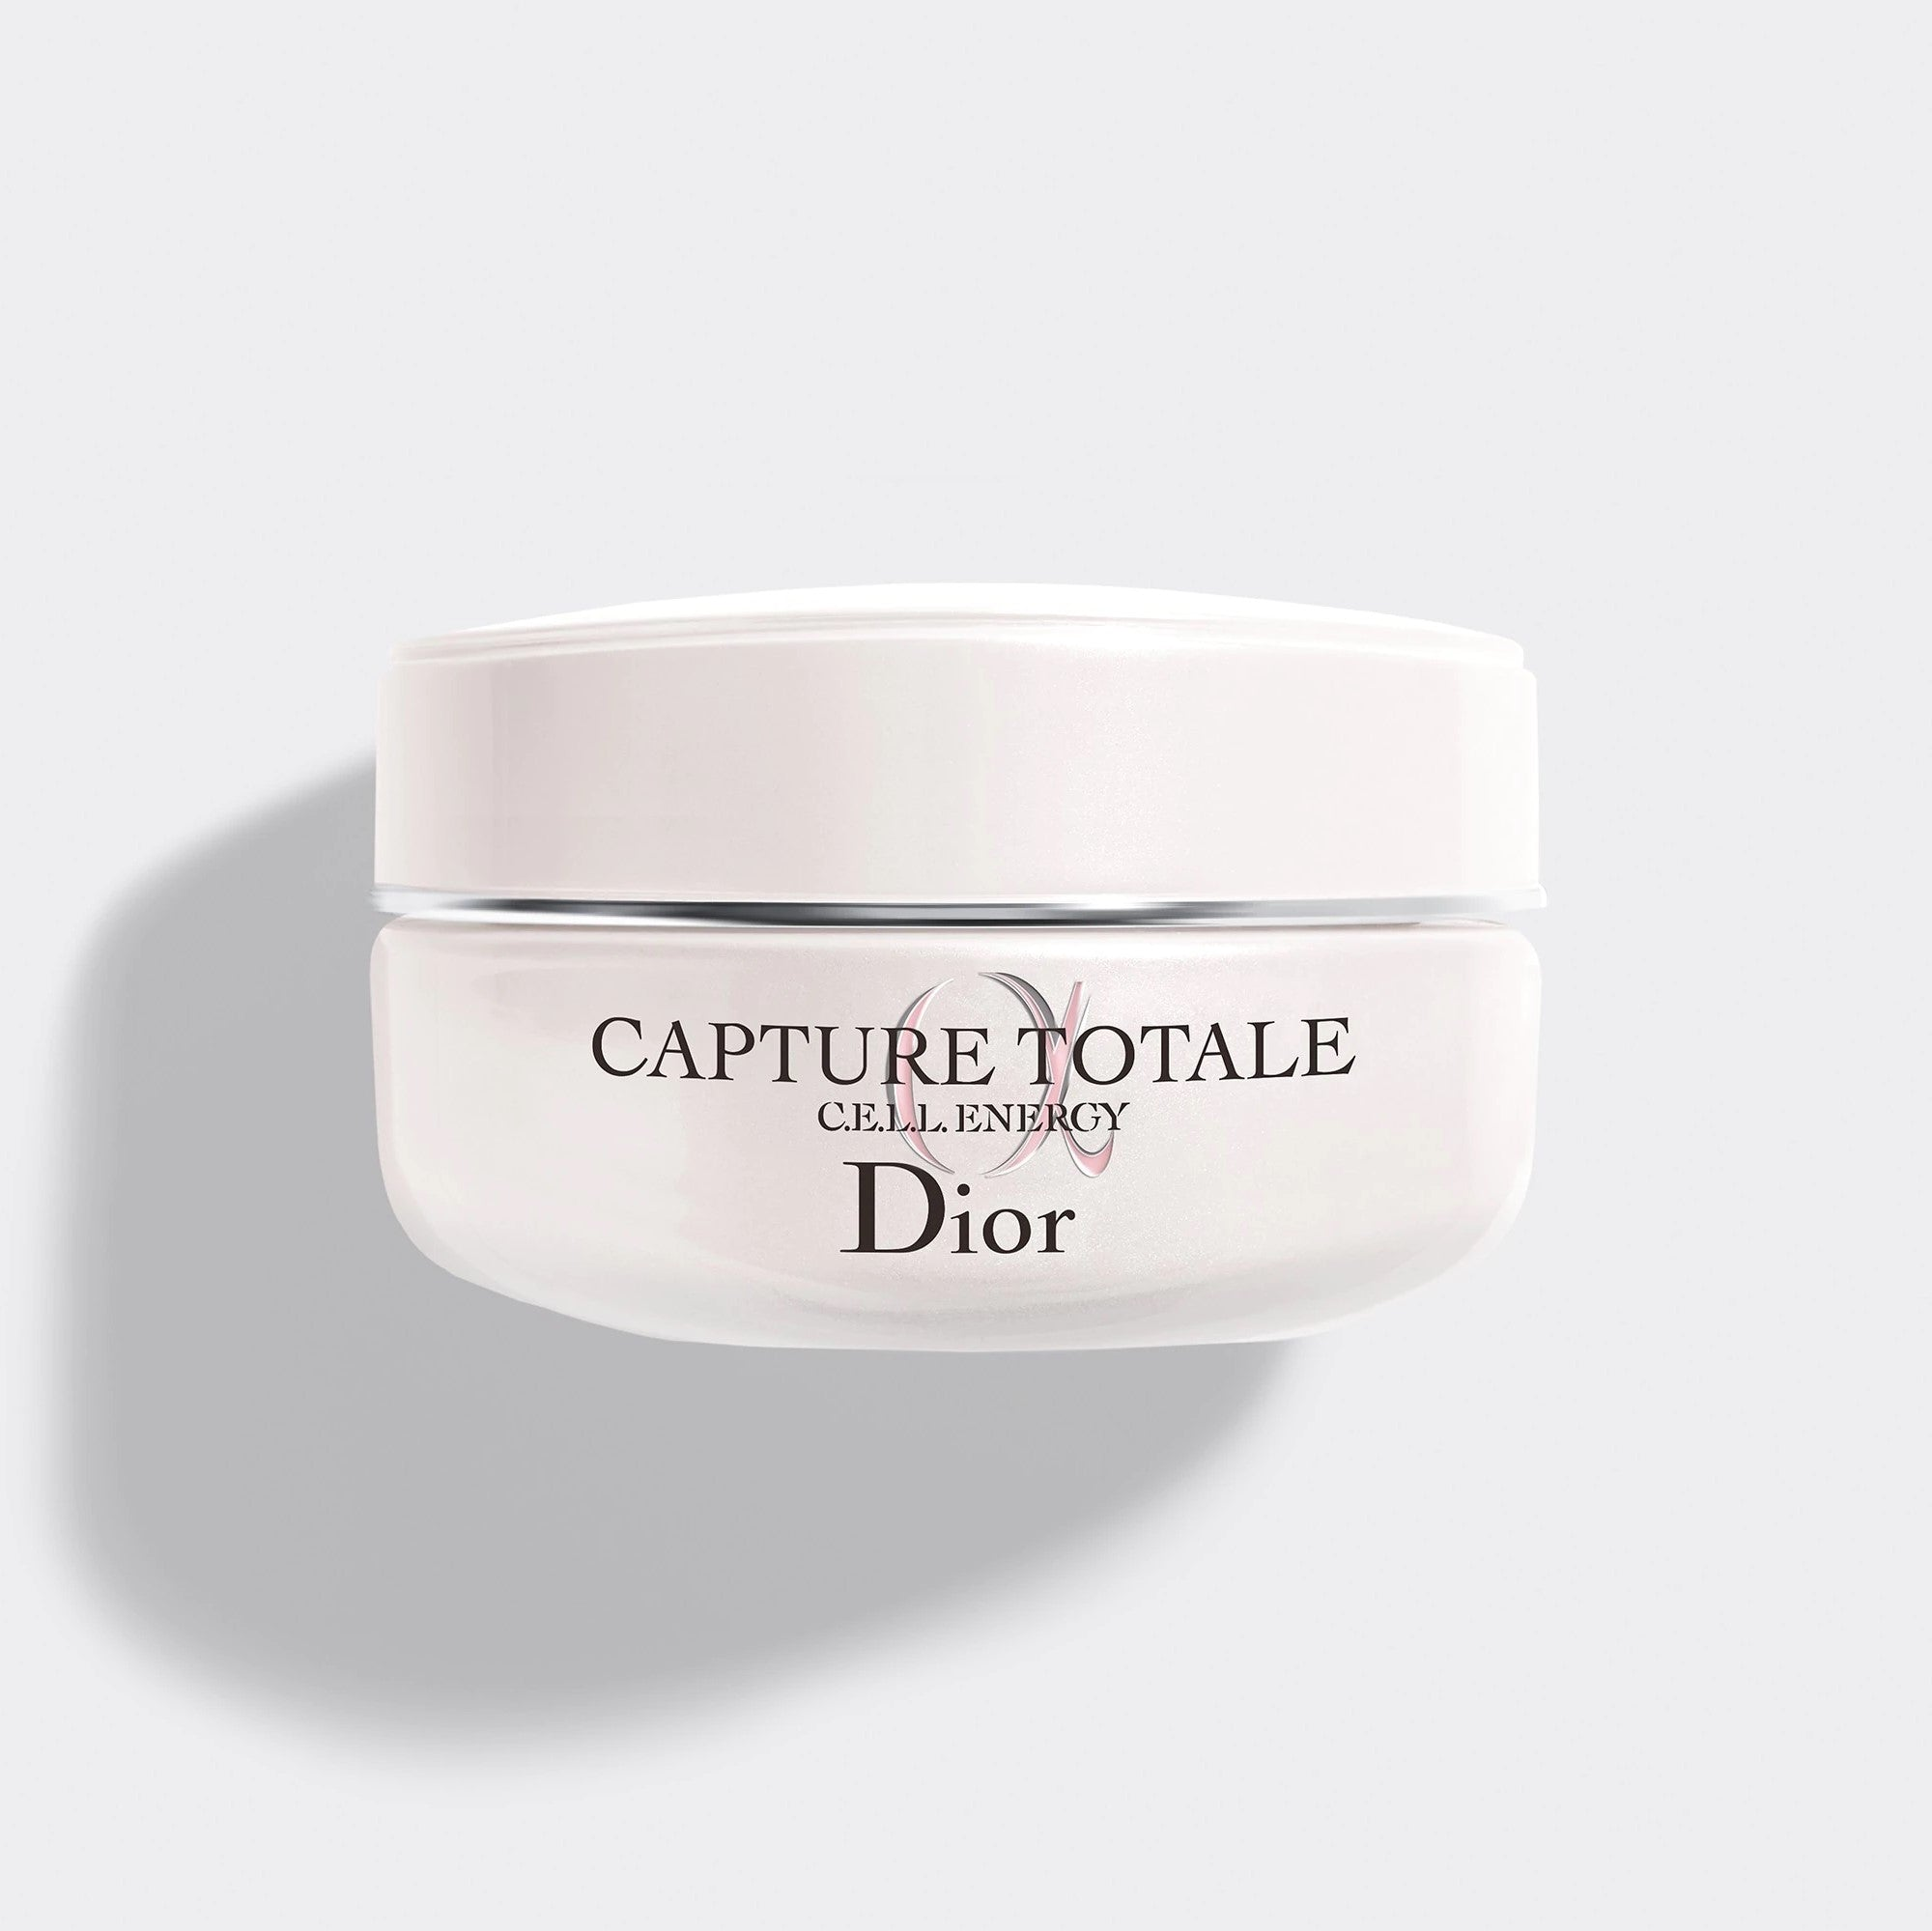 CAPTURE TOTALE C.E.L.L. ENERGY* | Firming & wrinkle-correcting eye cream